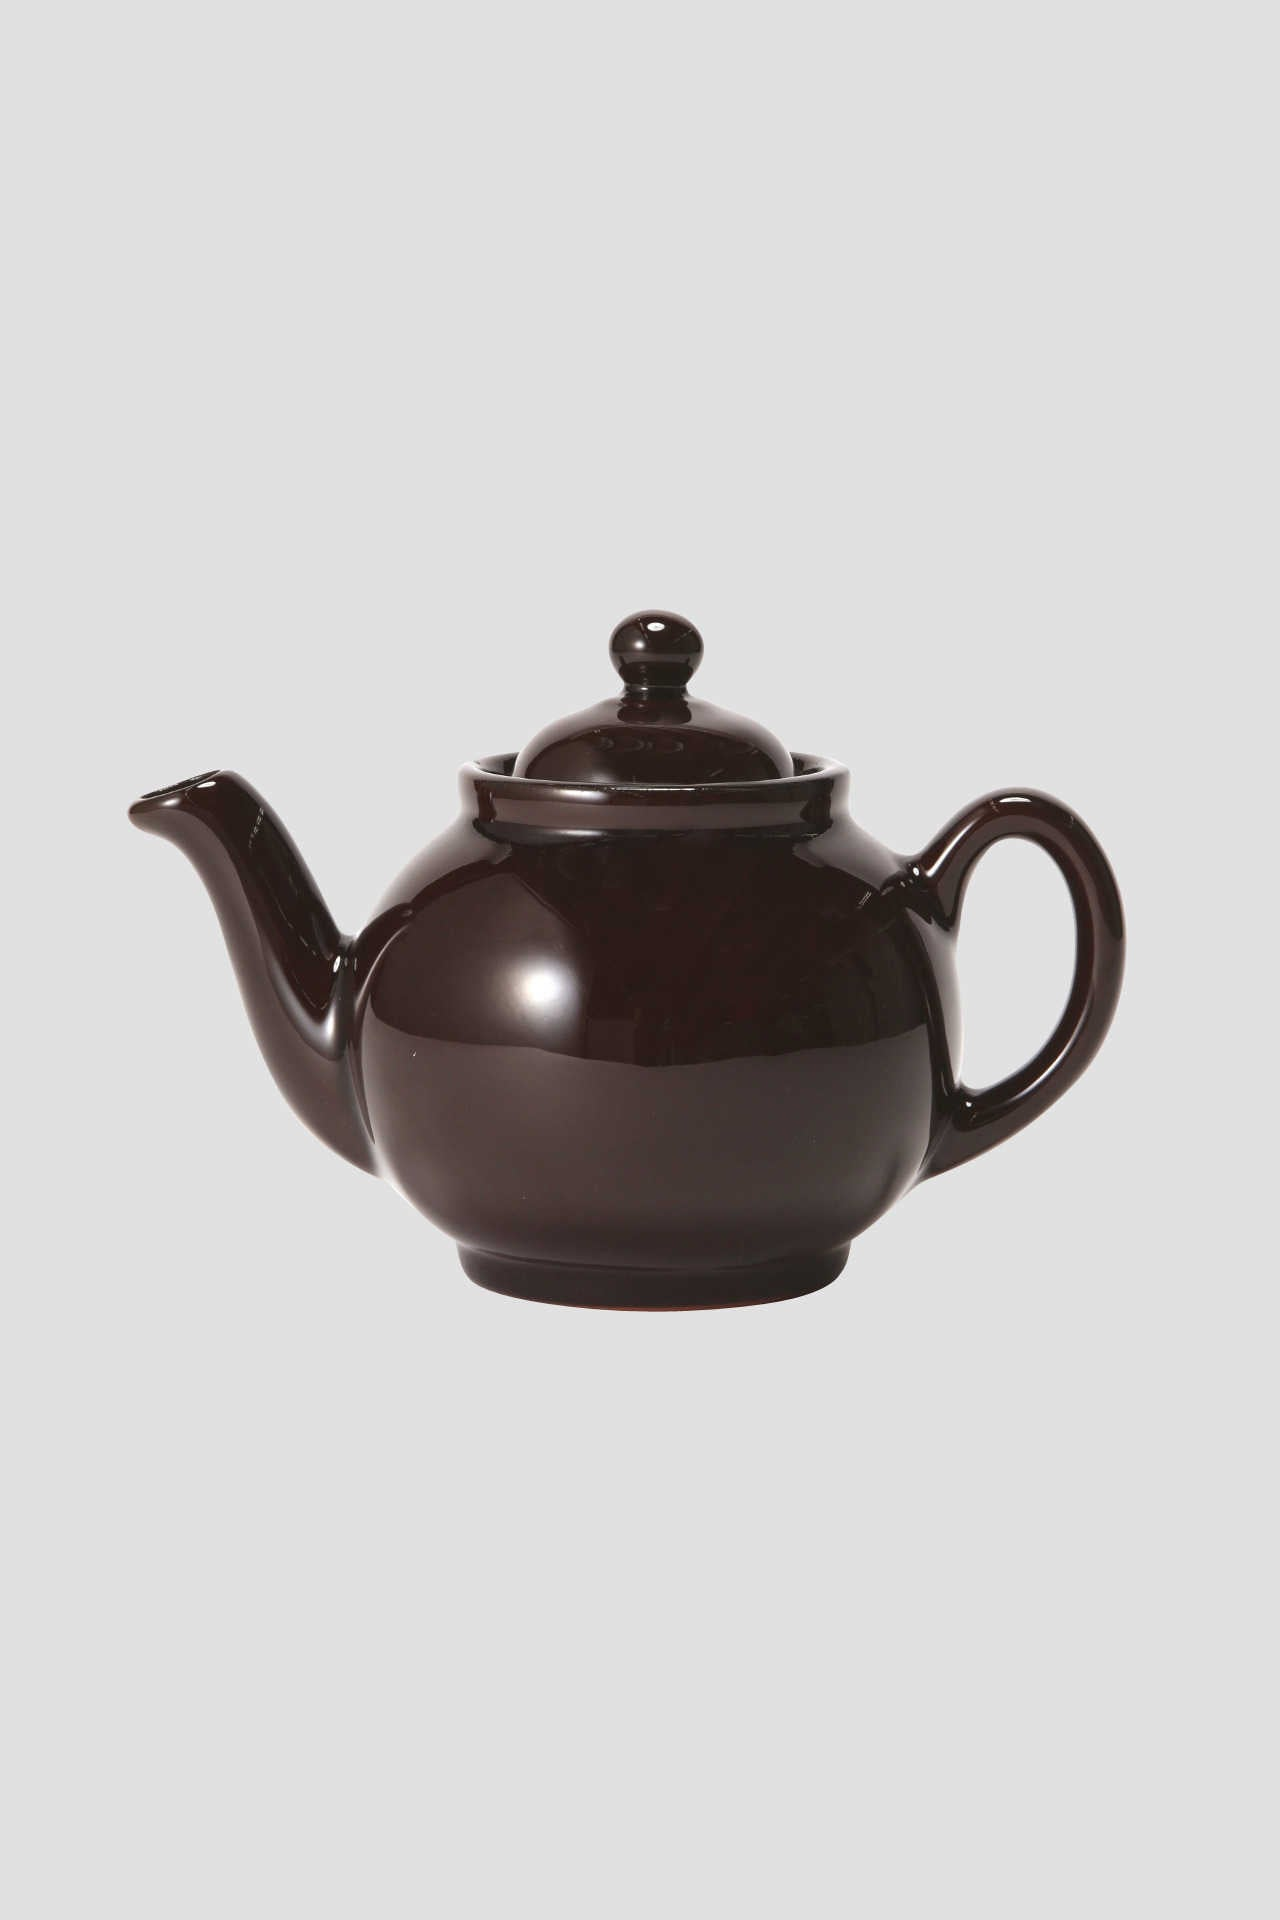 BROWN BETTY TEA POT 2CUPS1